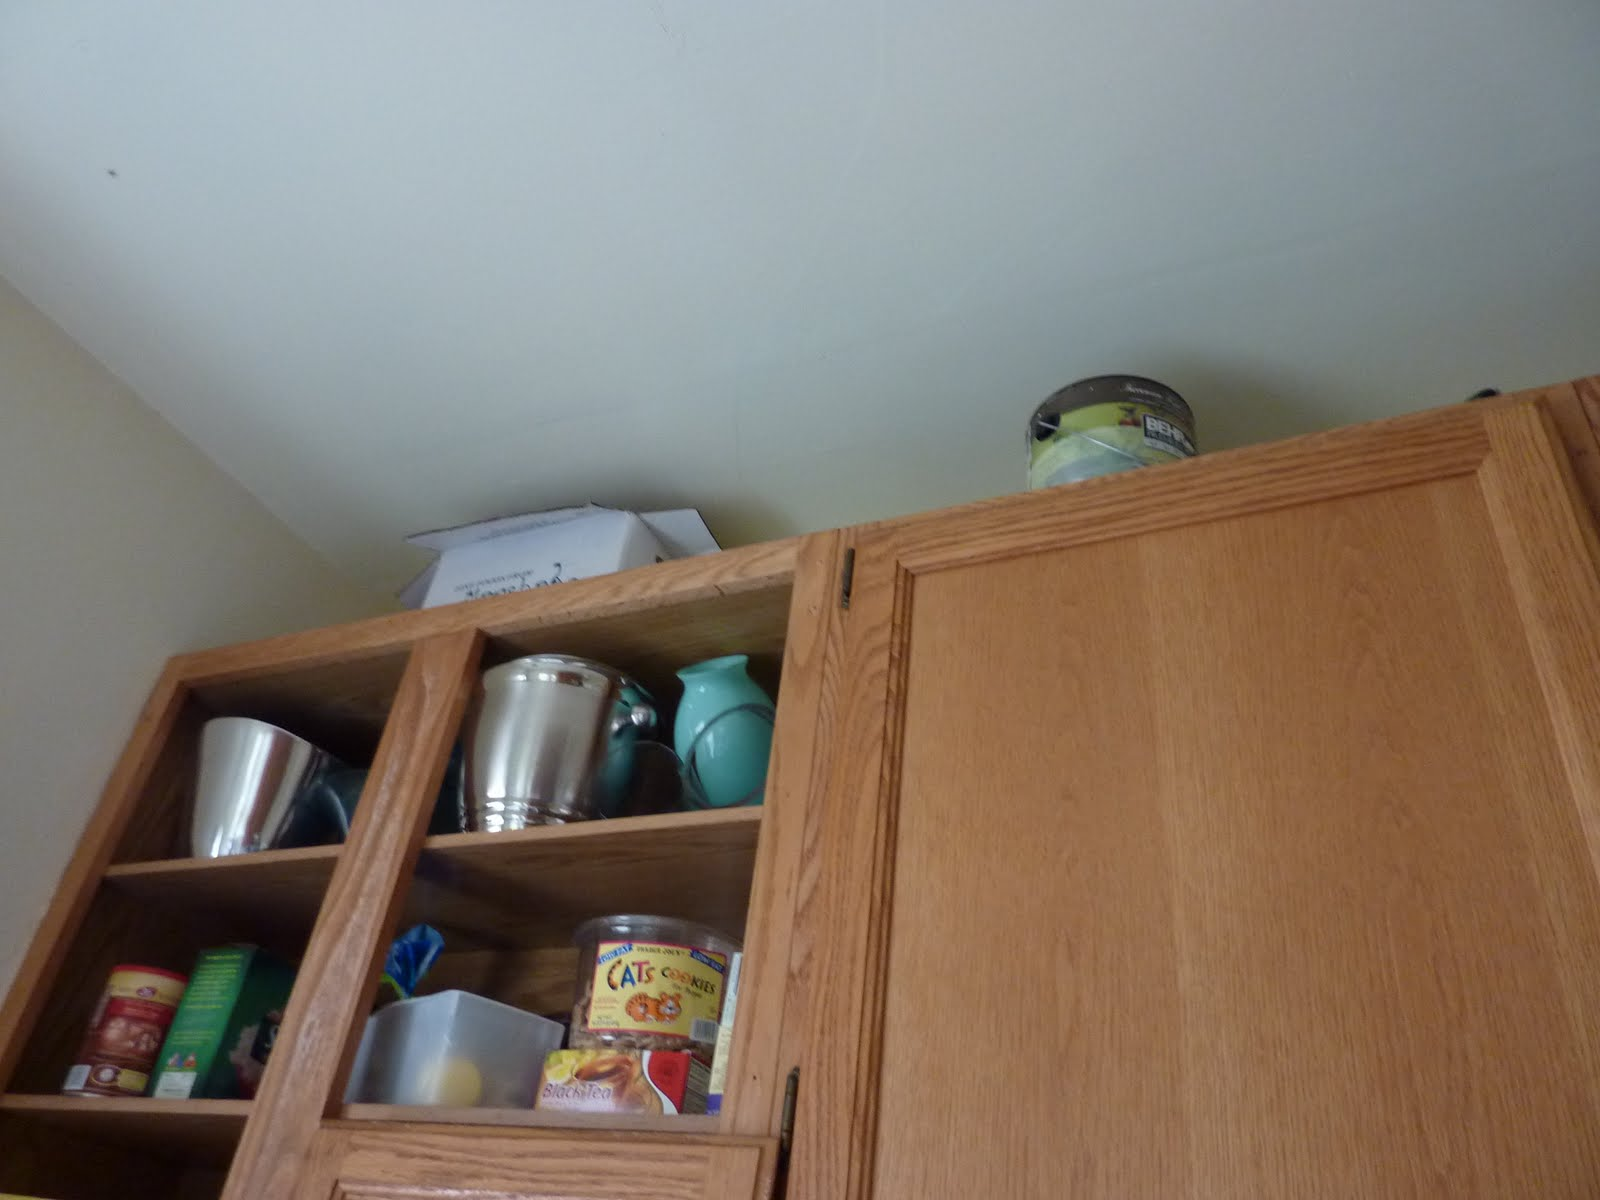 Tip: If you have it, use the space above the cabinets to store